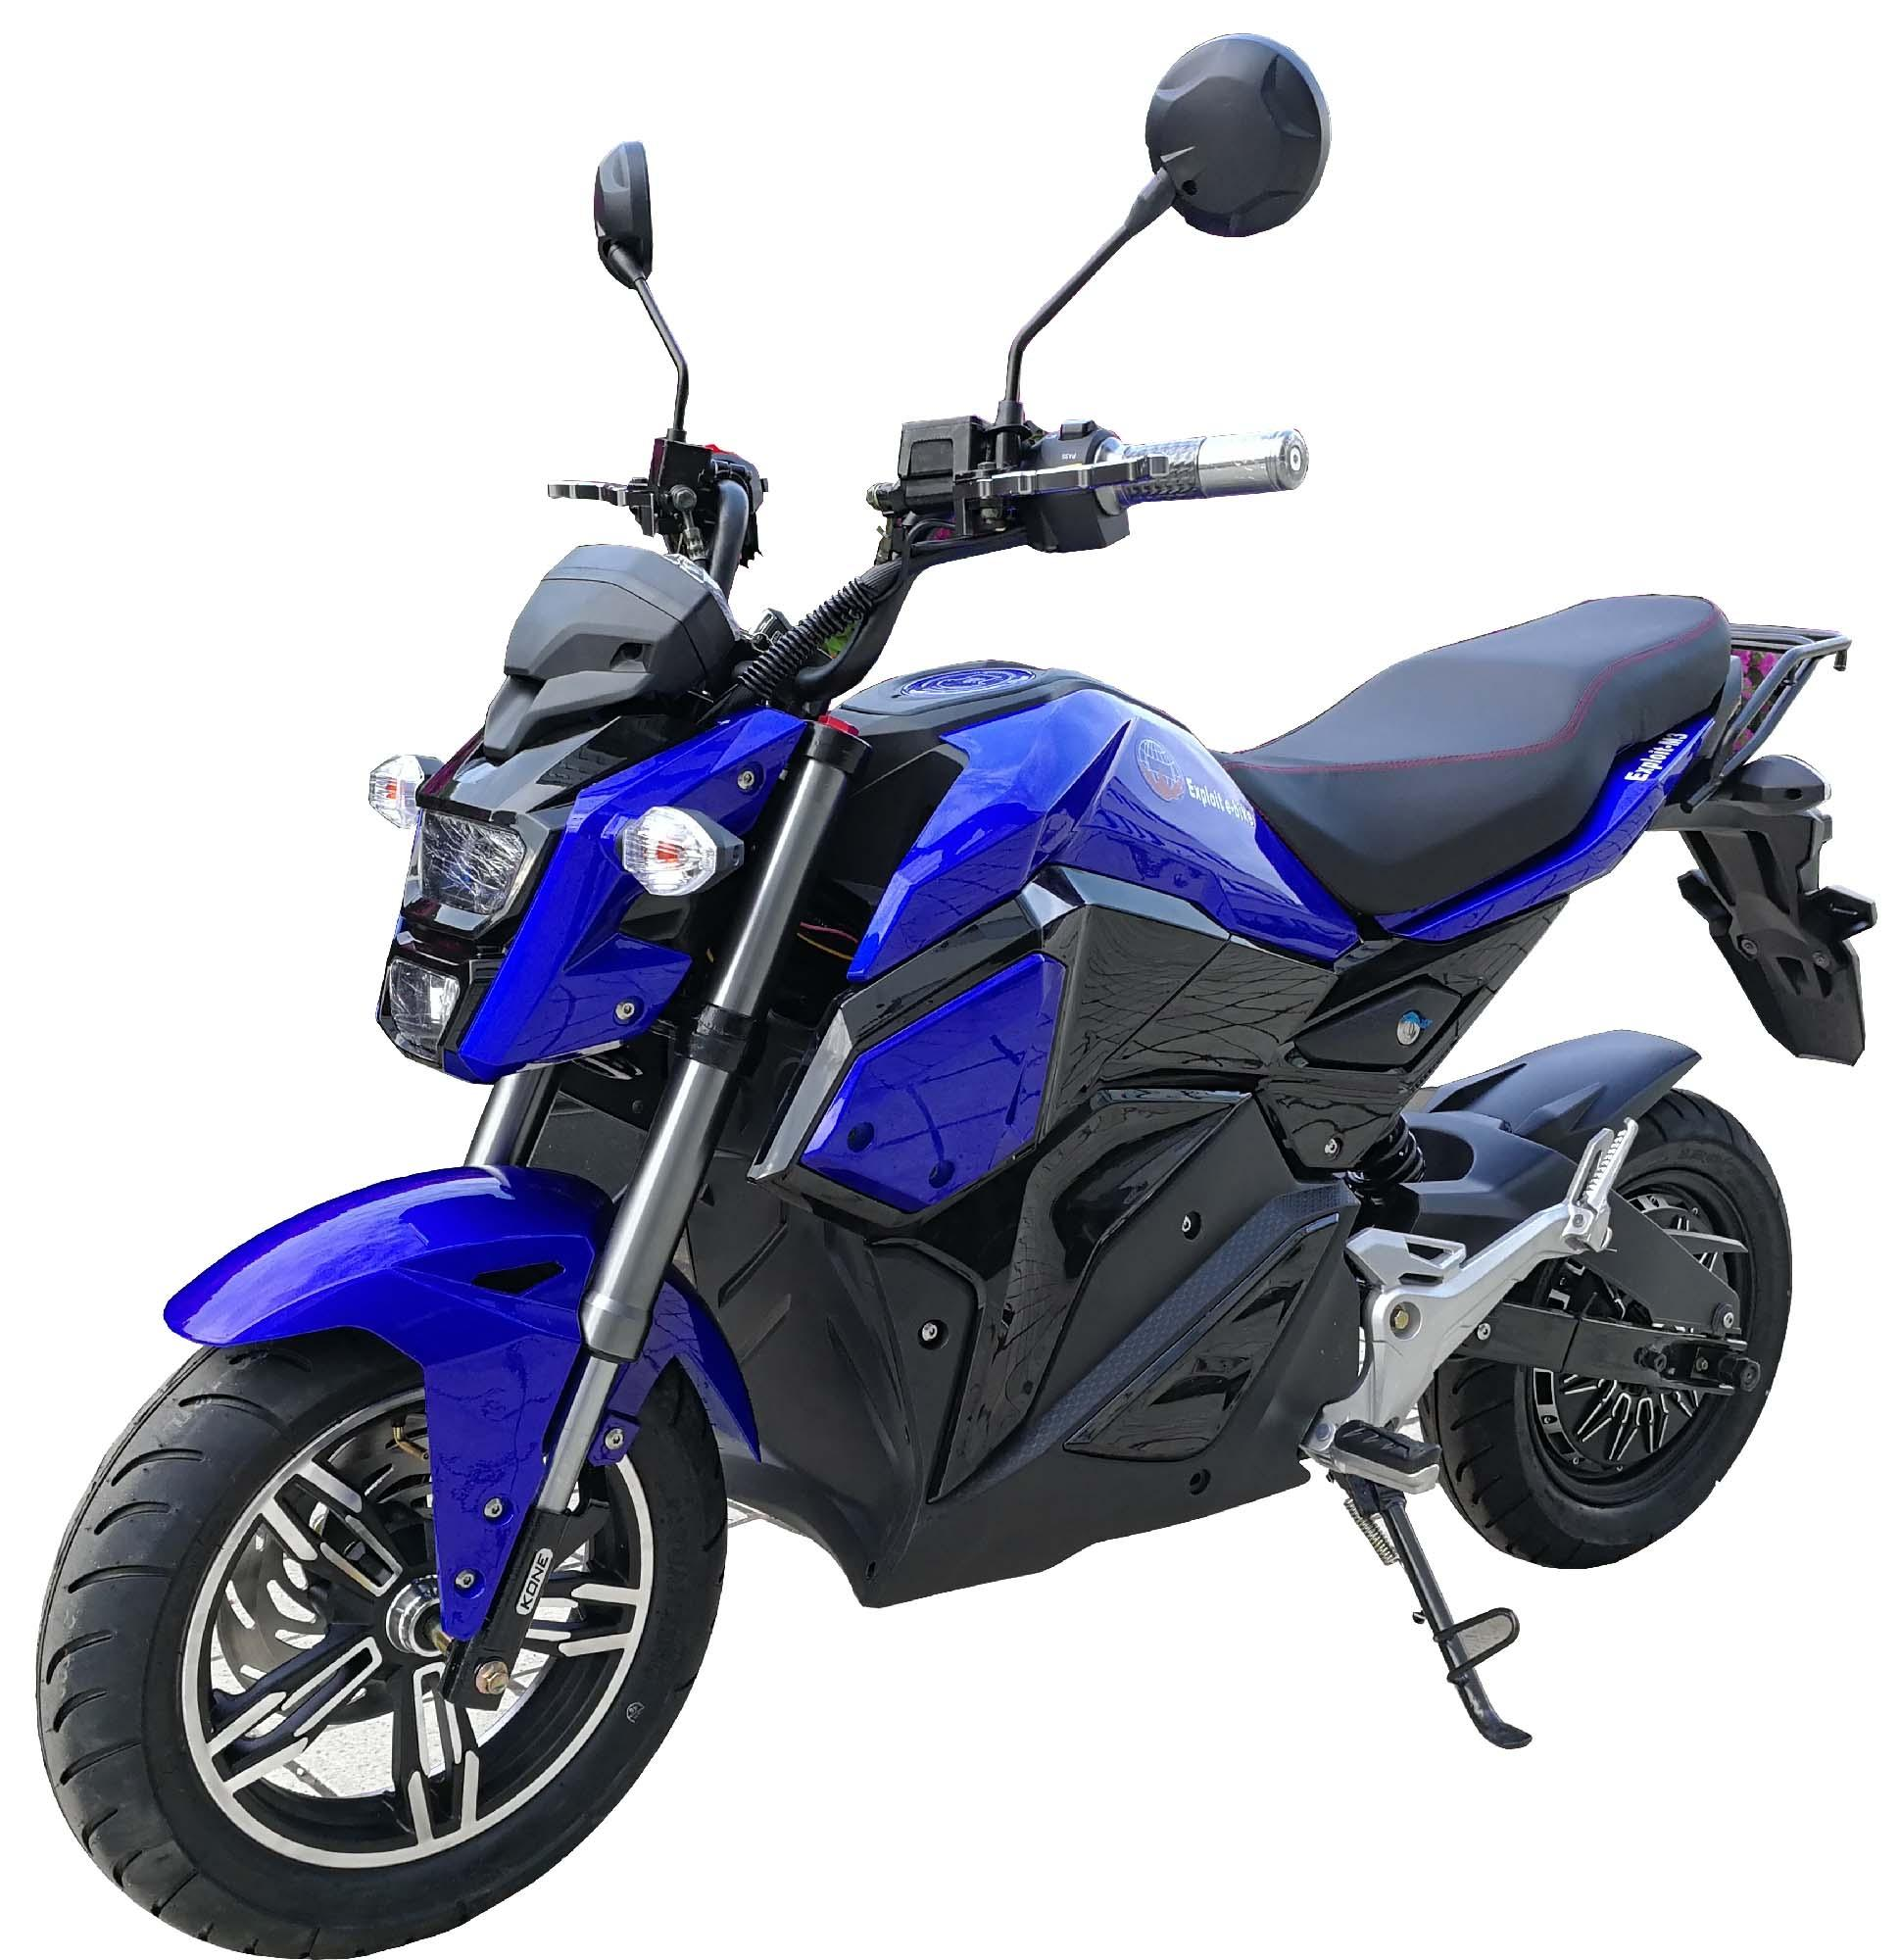 Motorcycle - Buy Motorcycle at Best Price in Bangladesh | www daraz